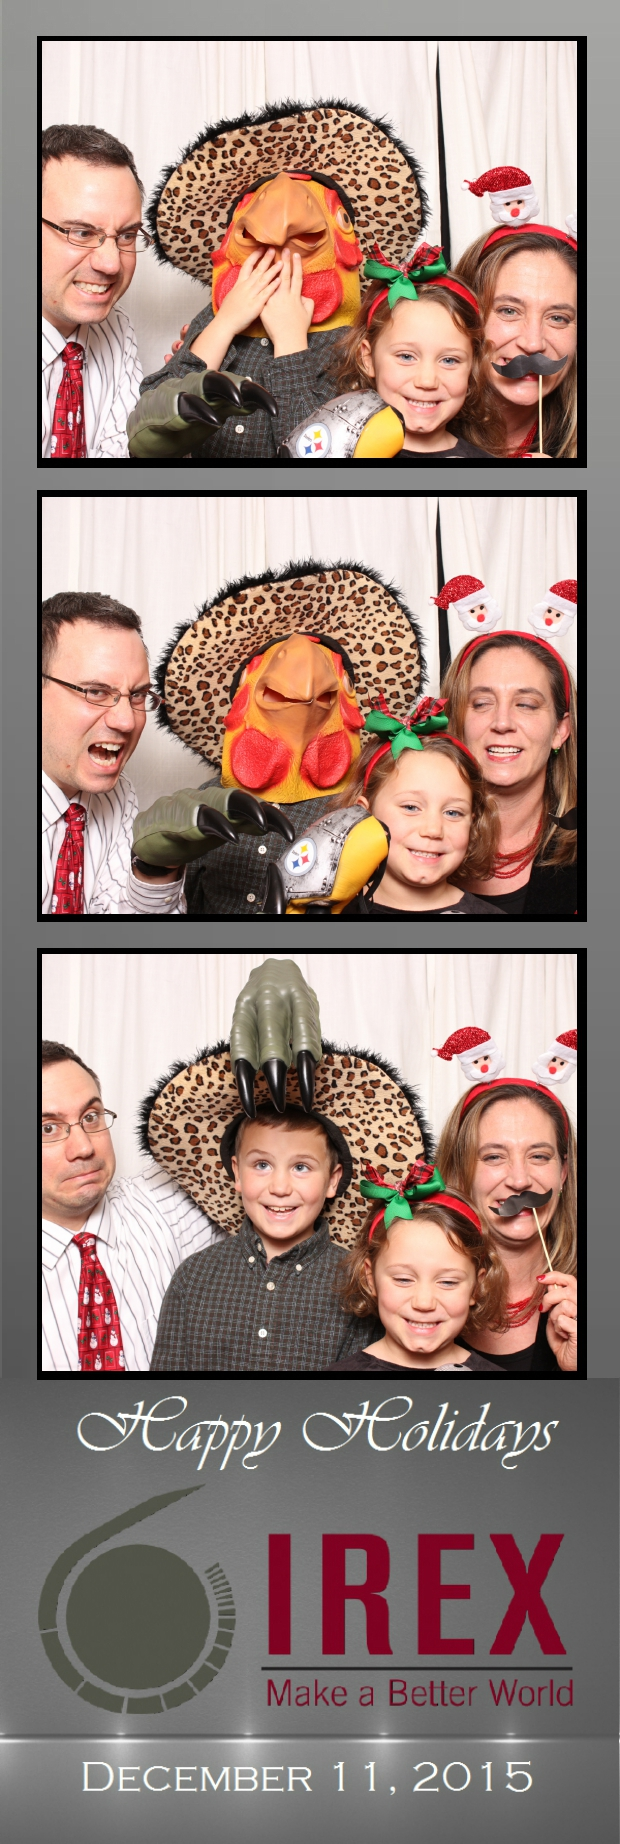 Guest House Events Photo Booth Strips IREX (6).jpg